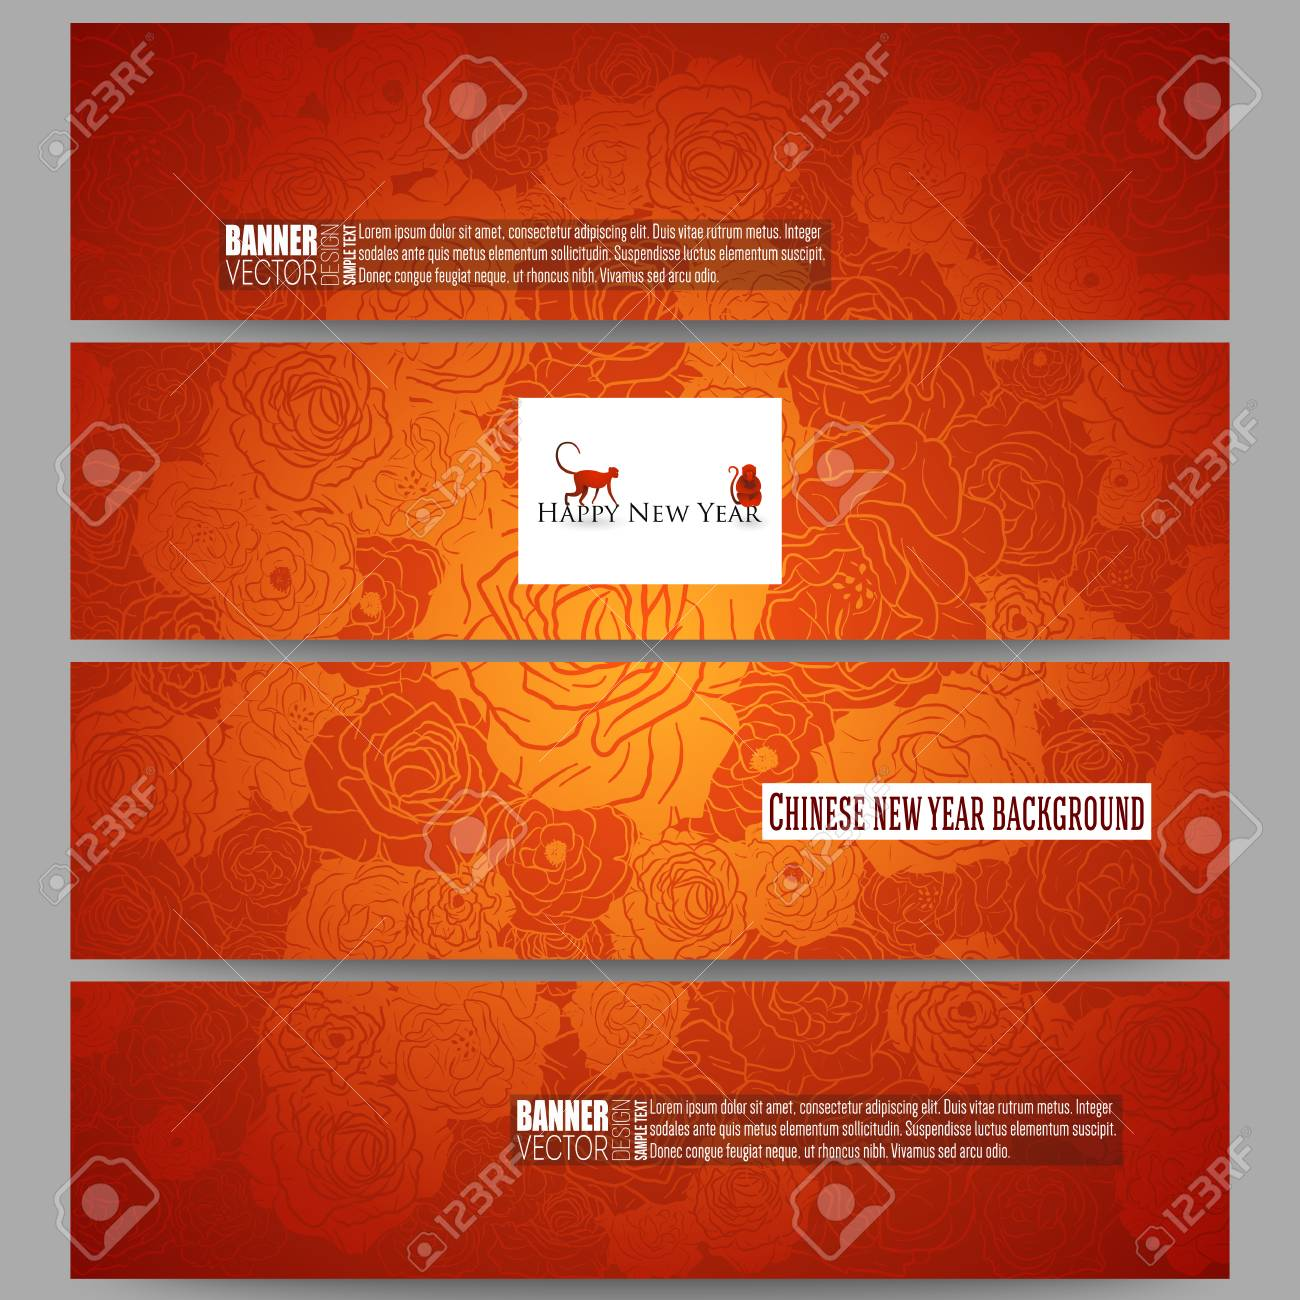 chinese new year background floral design with red monkeys